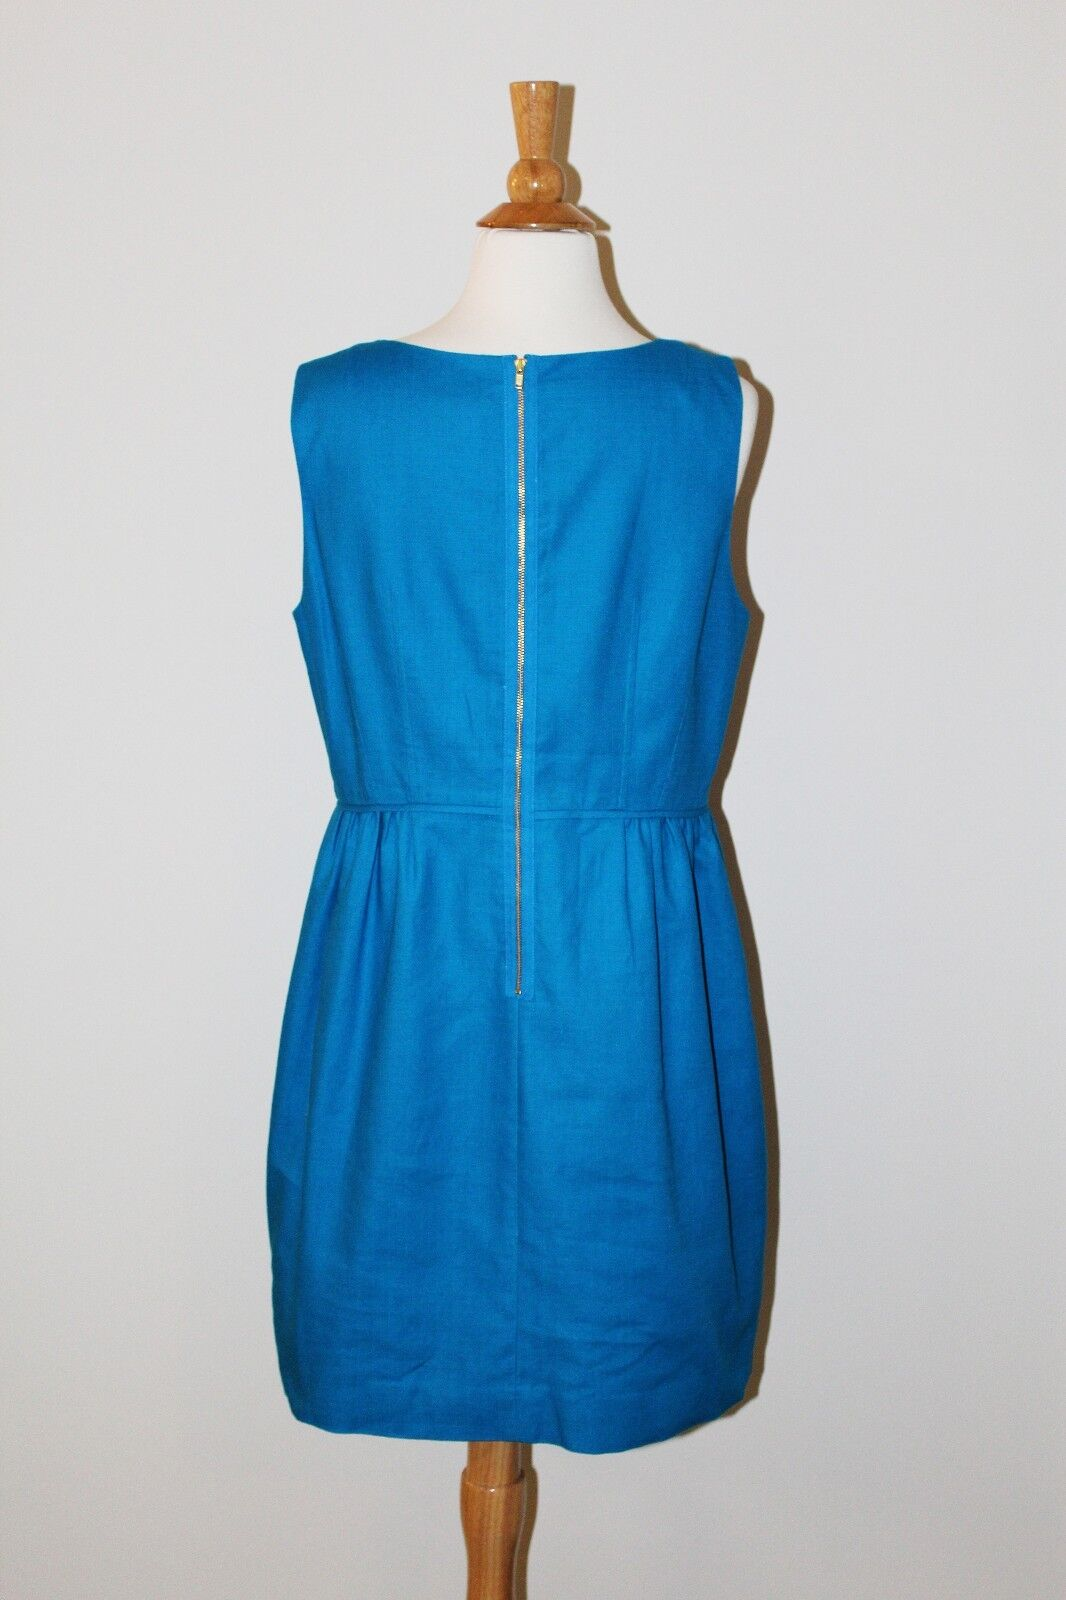 43213e42bf2 ... NWT J CREW CREW CREW FACTORY Prussian bluee TEXTURED COTTON DRESS Sz 14  Style 50344 a53a7b